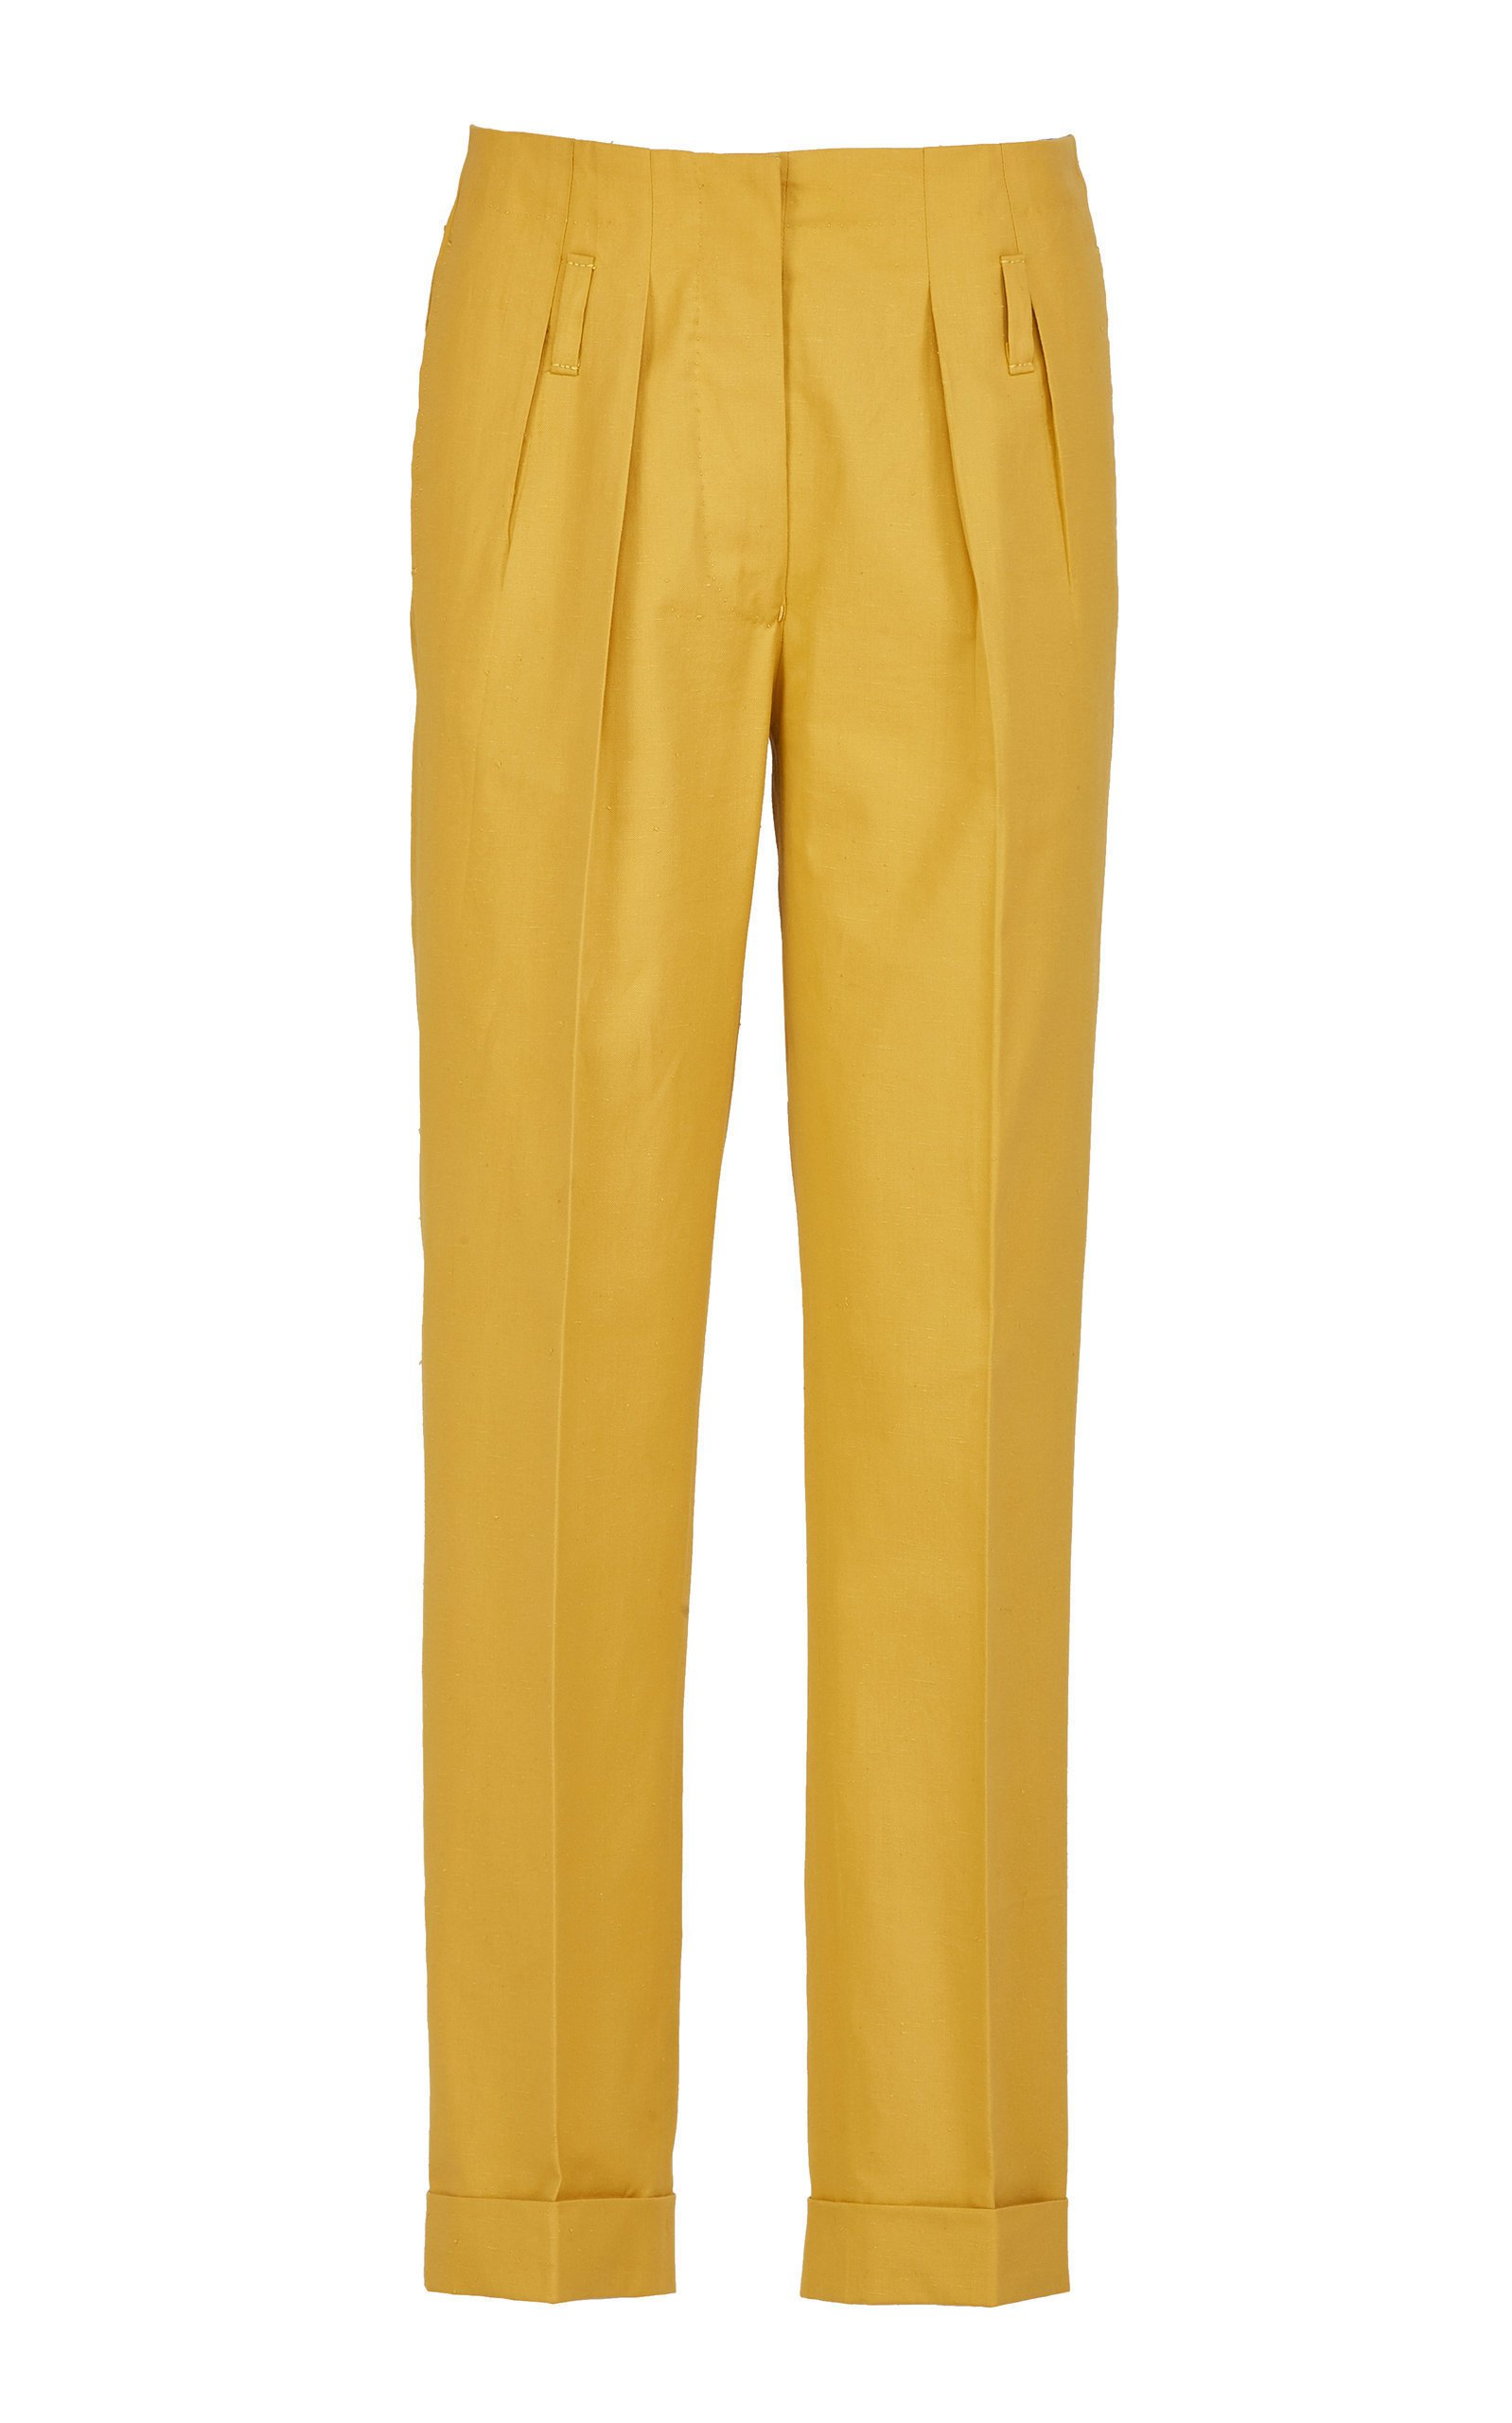 Giuliva Heritage Collection Gastone Raw Cotton Twill Trousers